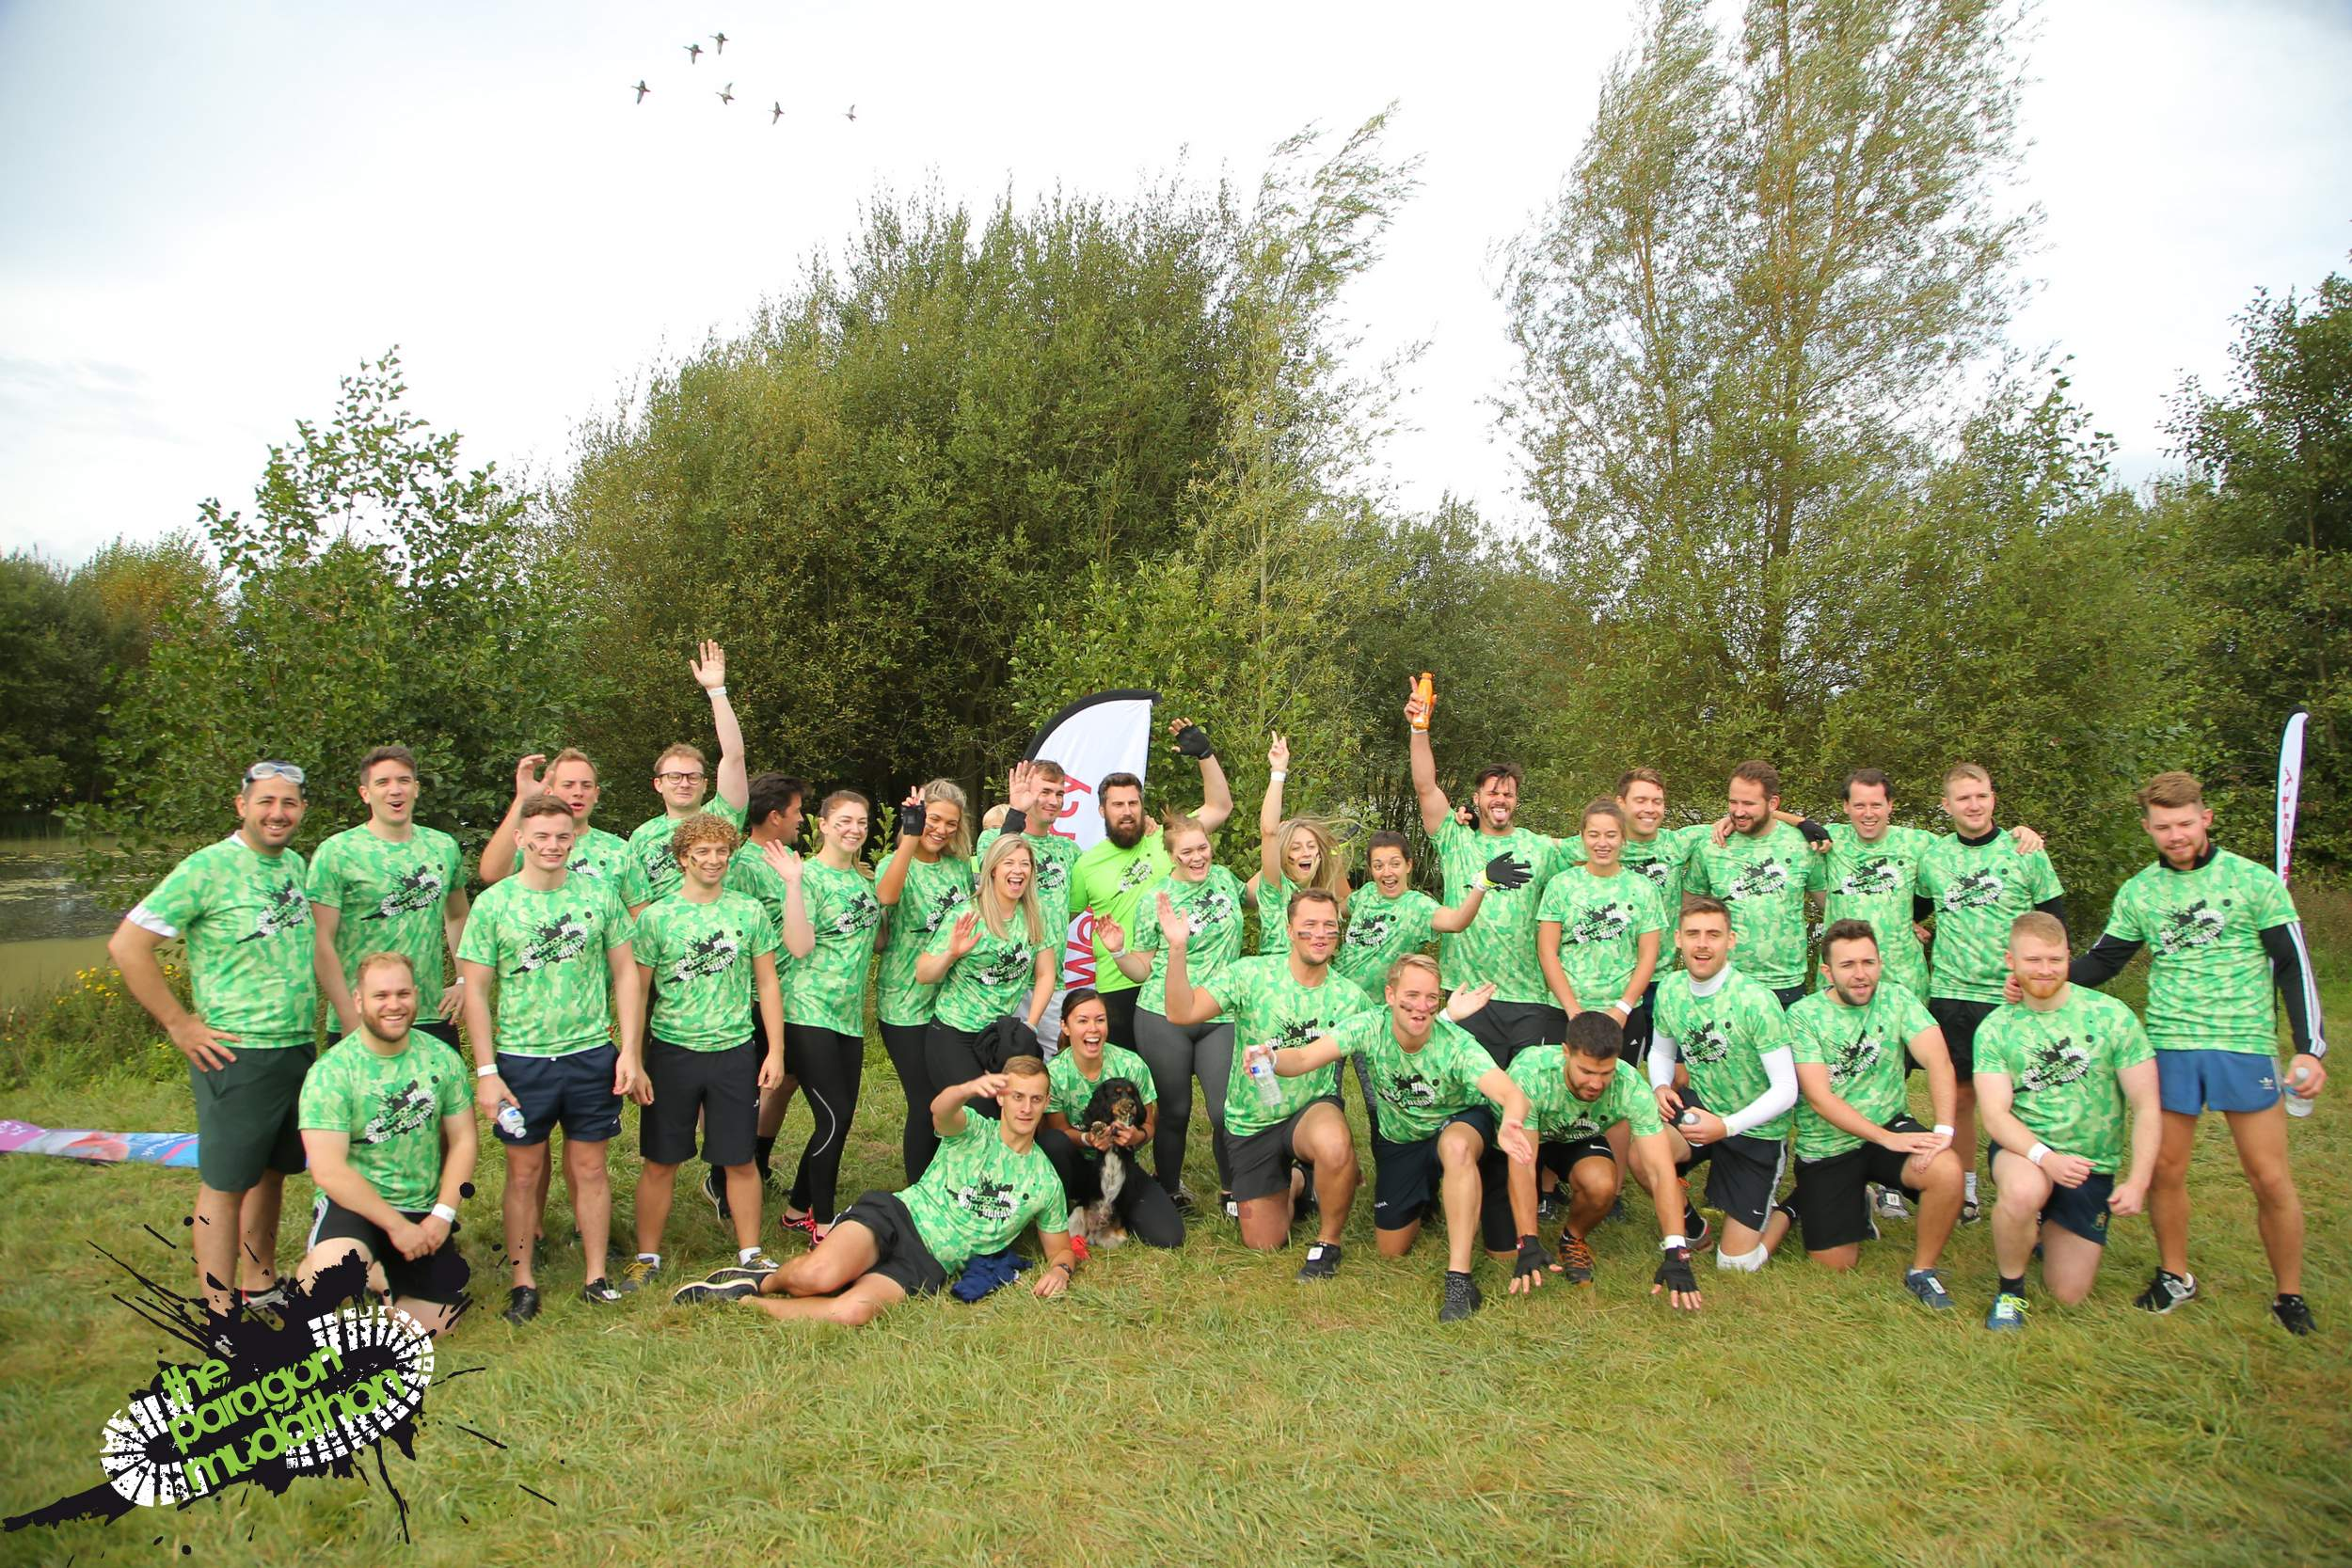 The biggest and muddiest Mudathon so far